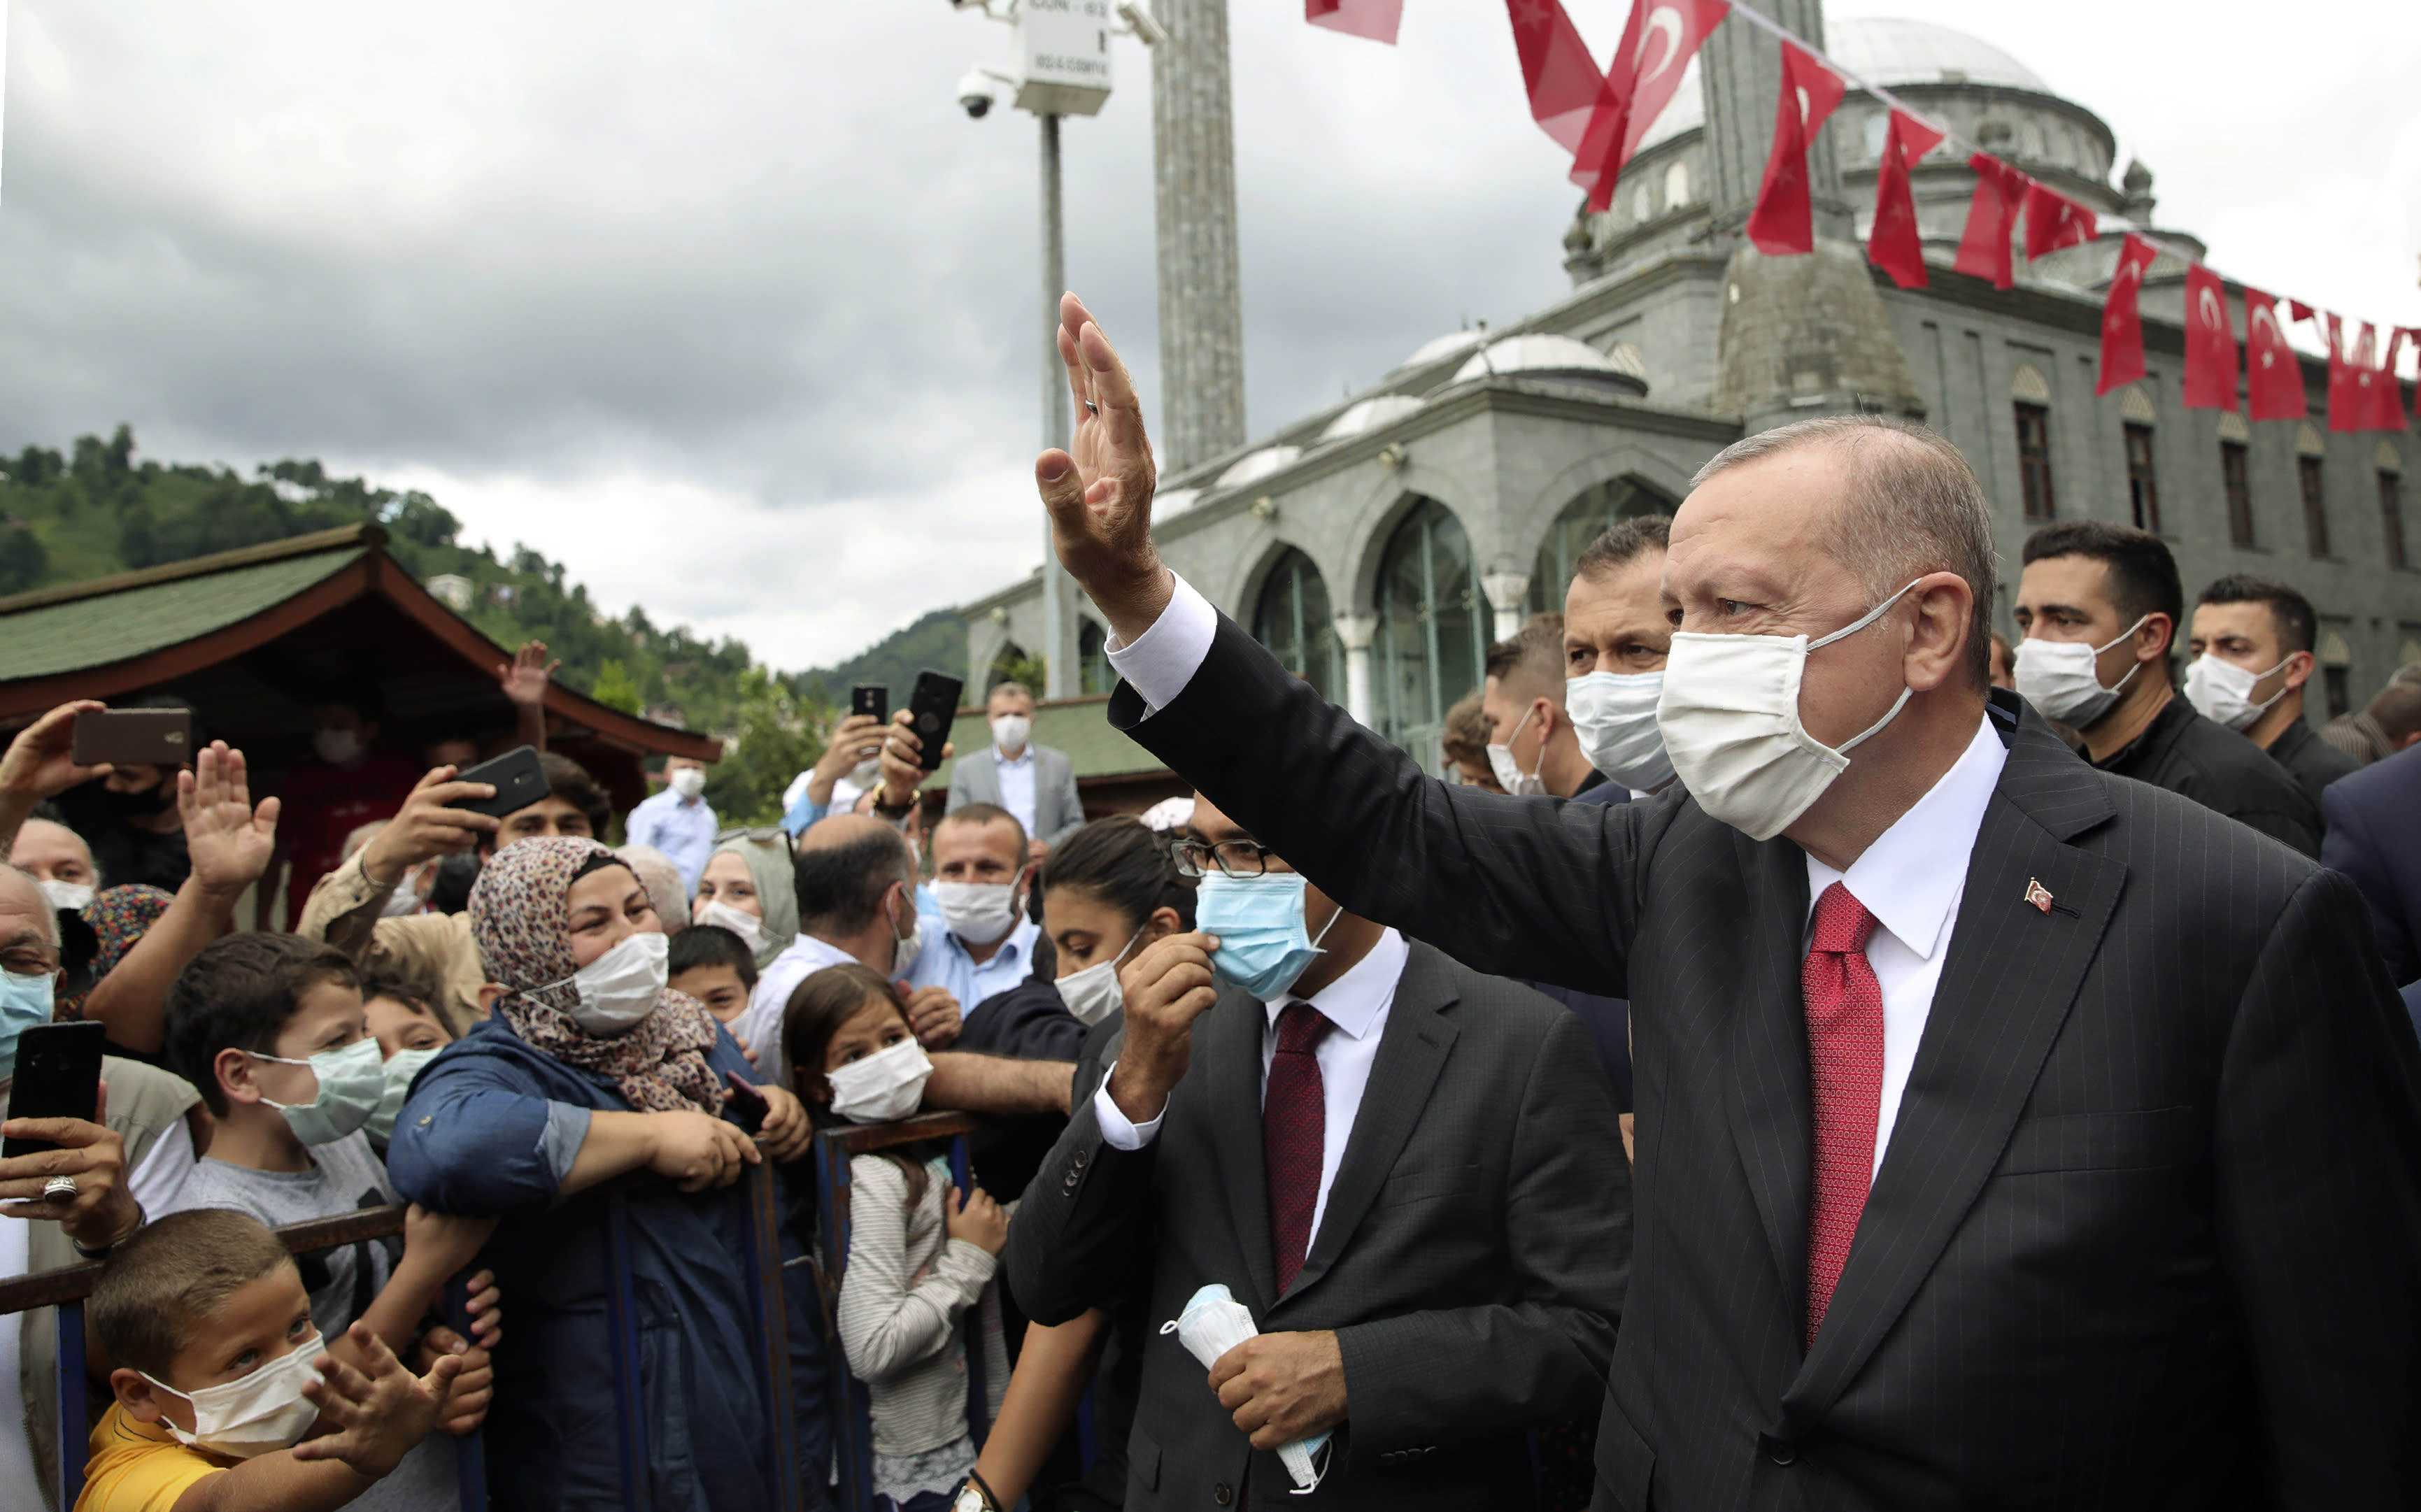 Turkey's President Recep Tayyip Erdogan wearing a face mask to protect against the spread of coronavirus, waves toward his supporters in Black Sea city of Rize, Turkey, Saturday, Aug. 15, 2020. Turkey's health minister says the number of new COVID-19 infections Saturday has hit its highest in 45 days and announced 1,256 new cases.(Turkish Presidency via AP, Pool)